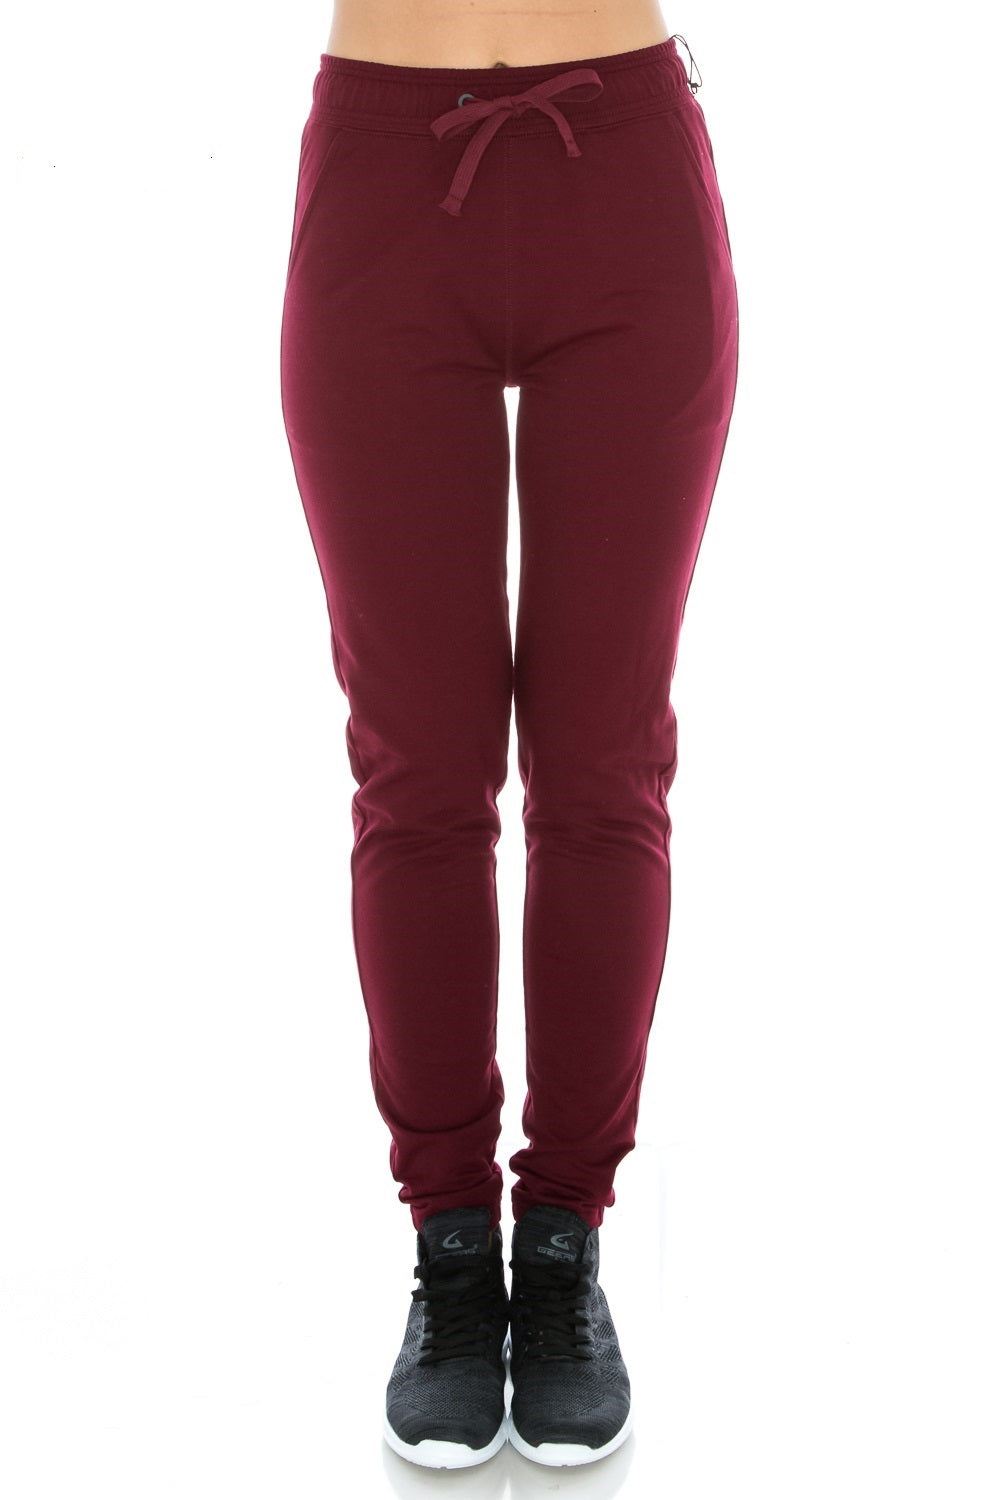 D. Burgundy Fitted Workout Yoga Sweatpants - Poplooks